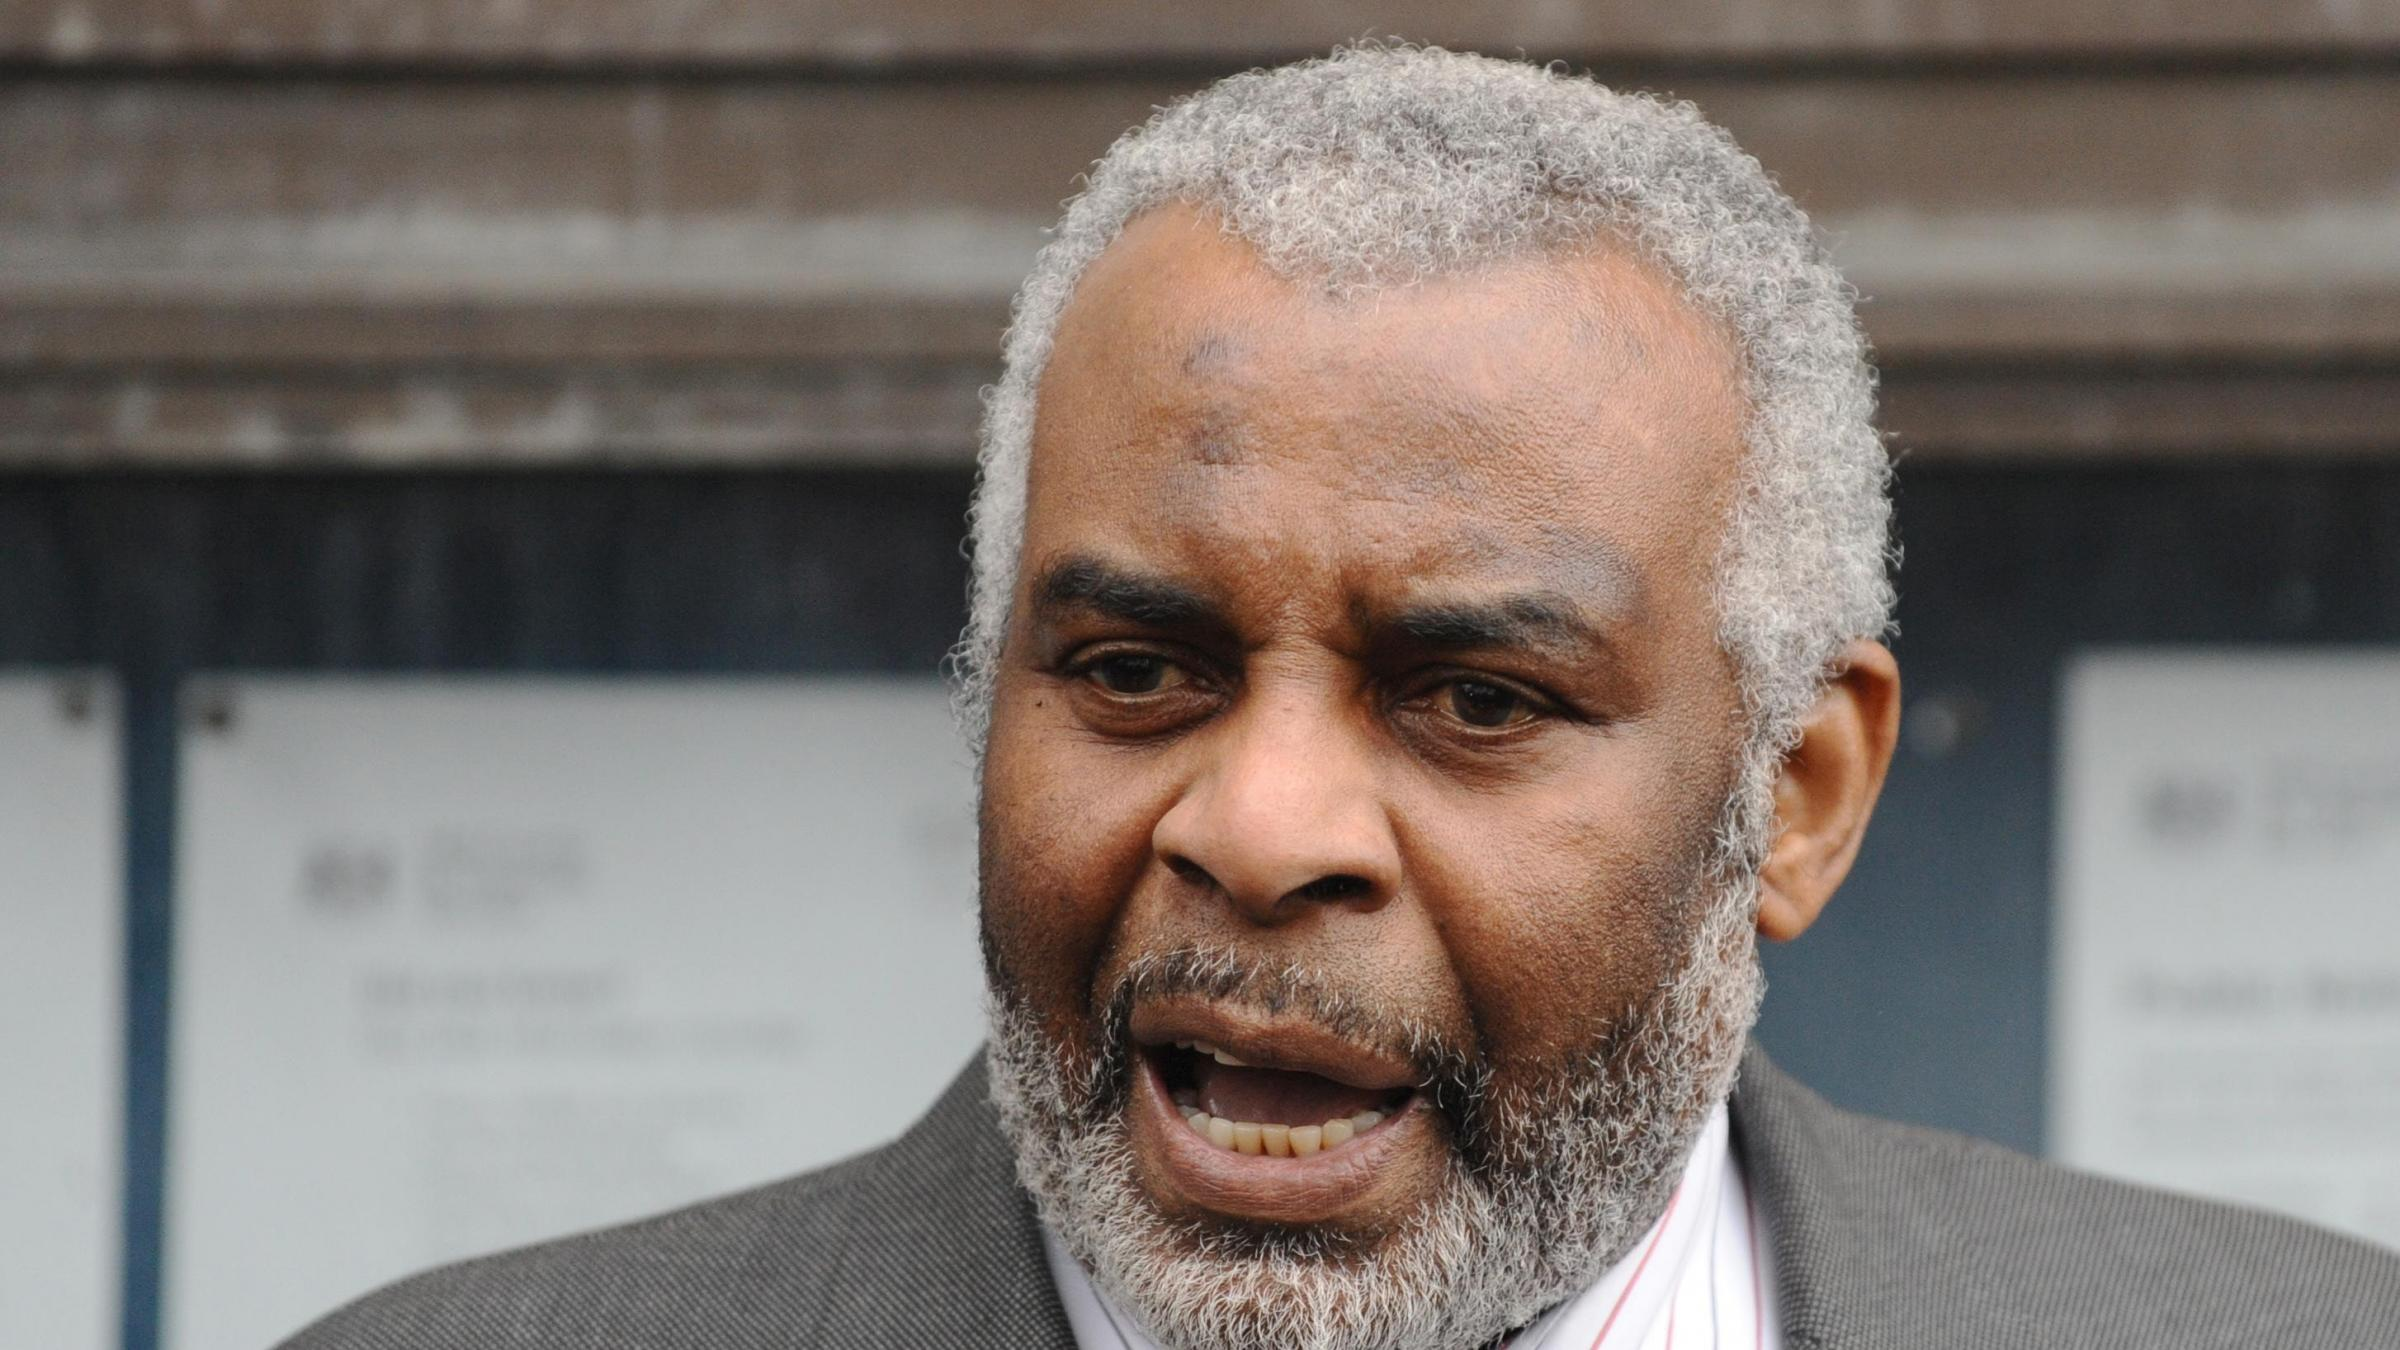 VIDEO: Father of Stephen Lawrence tells how he has forgiven his son's killers